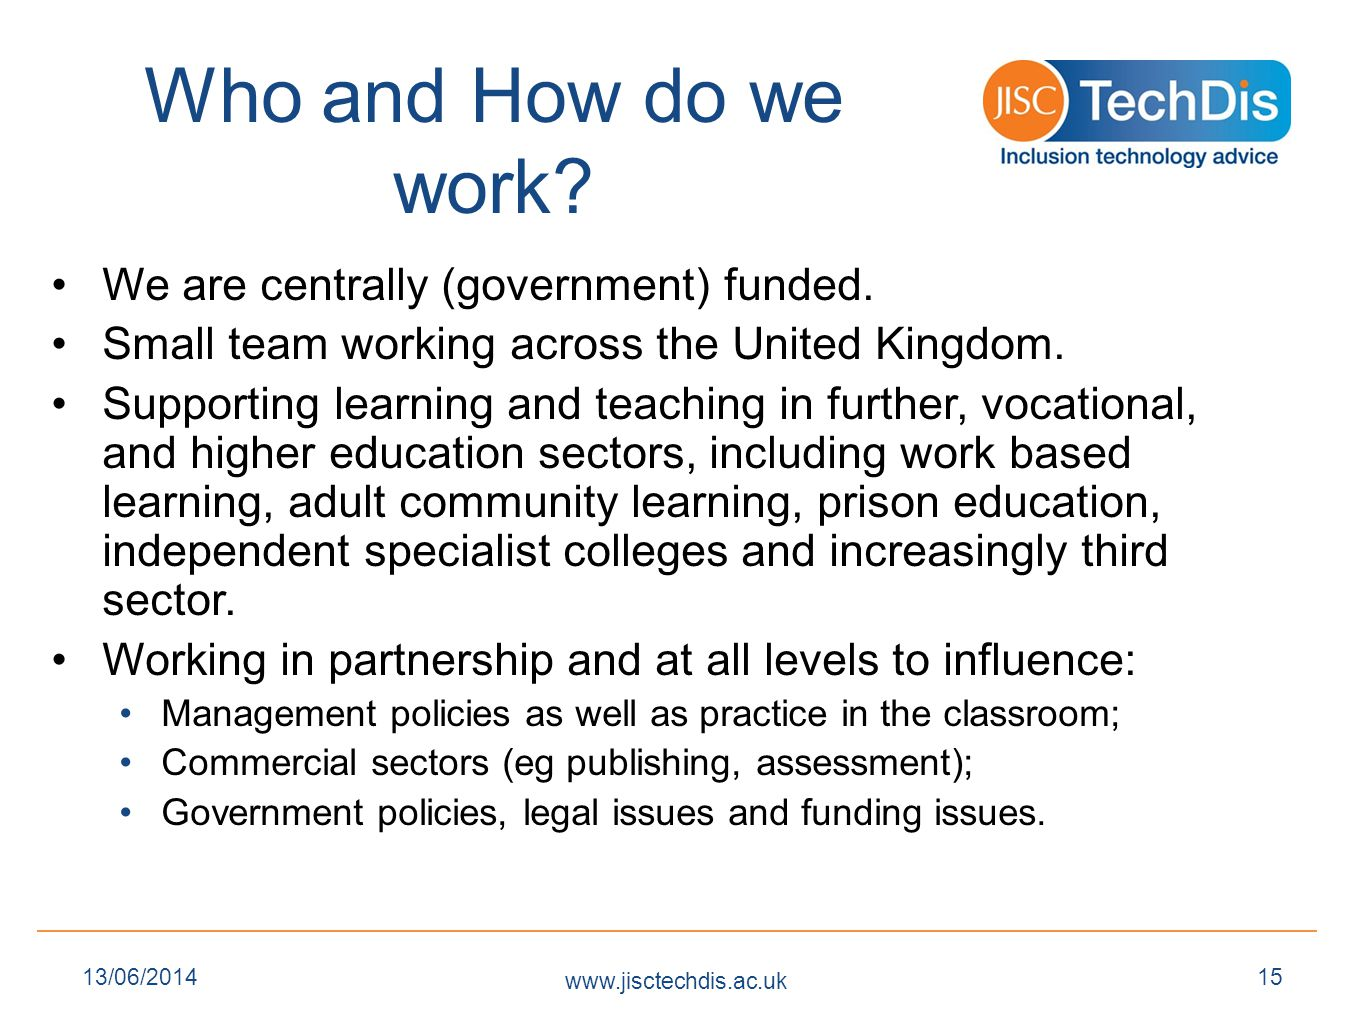 Who and How do we work. We are centrally (government) funded.